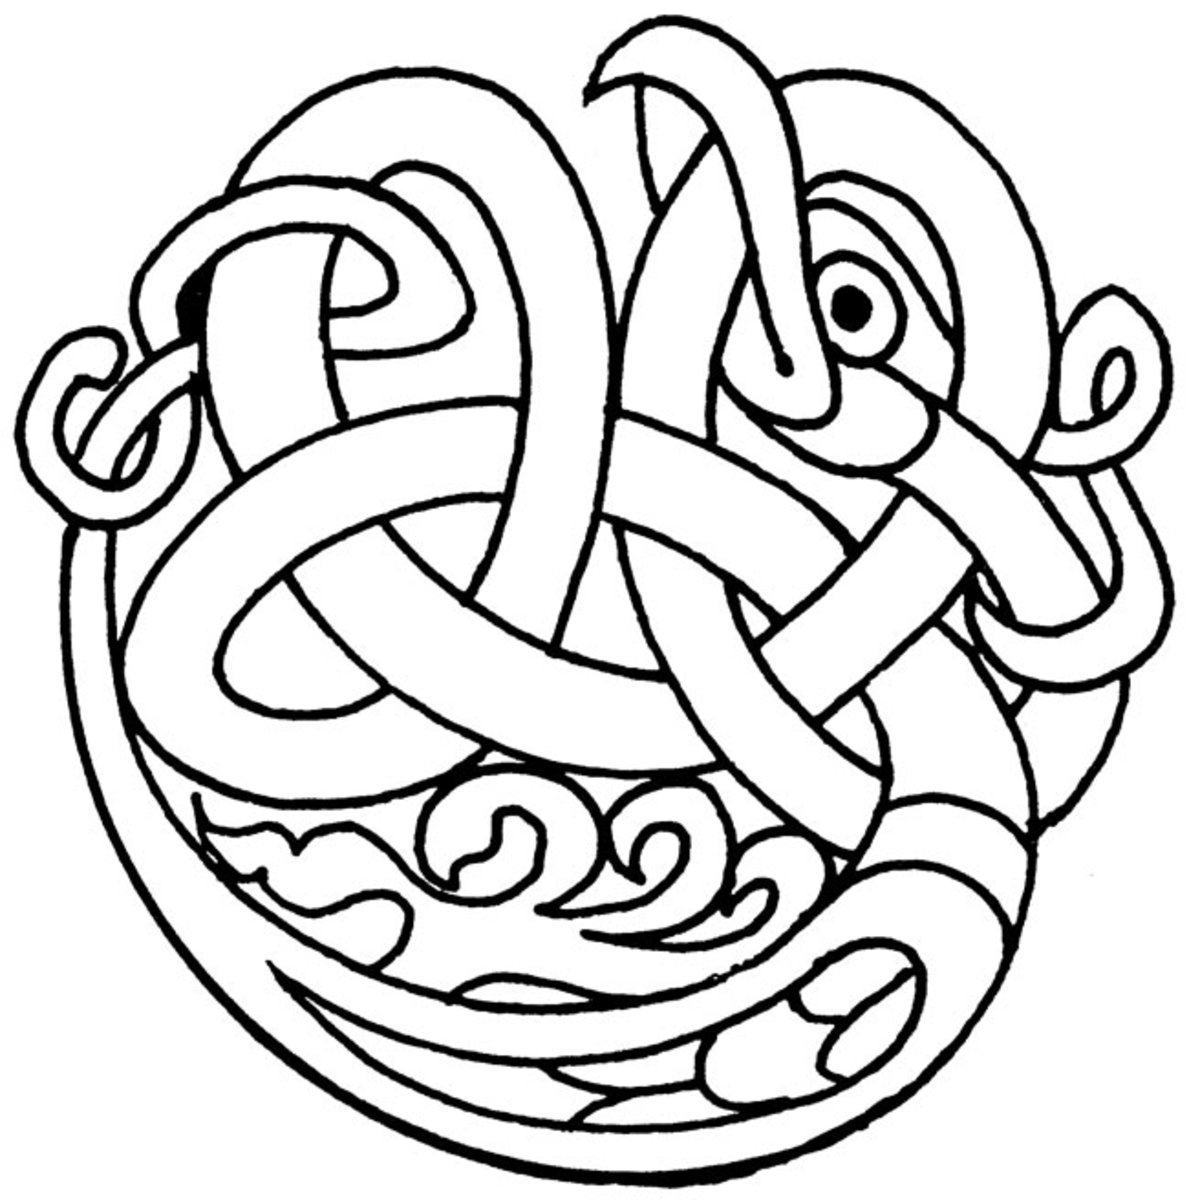 Celtic Design Art Coloring Pages for Kids Colouring Pictures to Print - Hawk